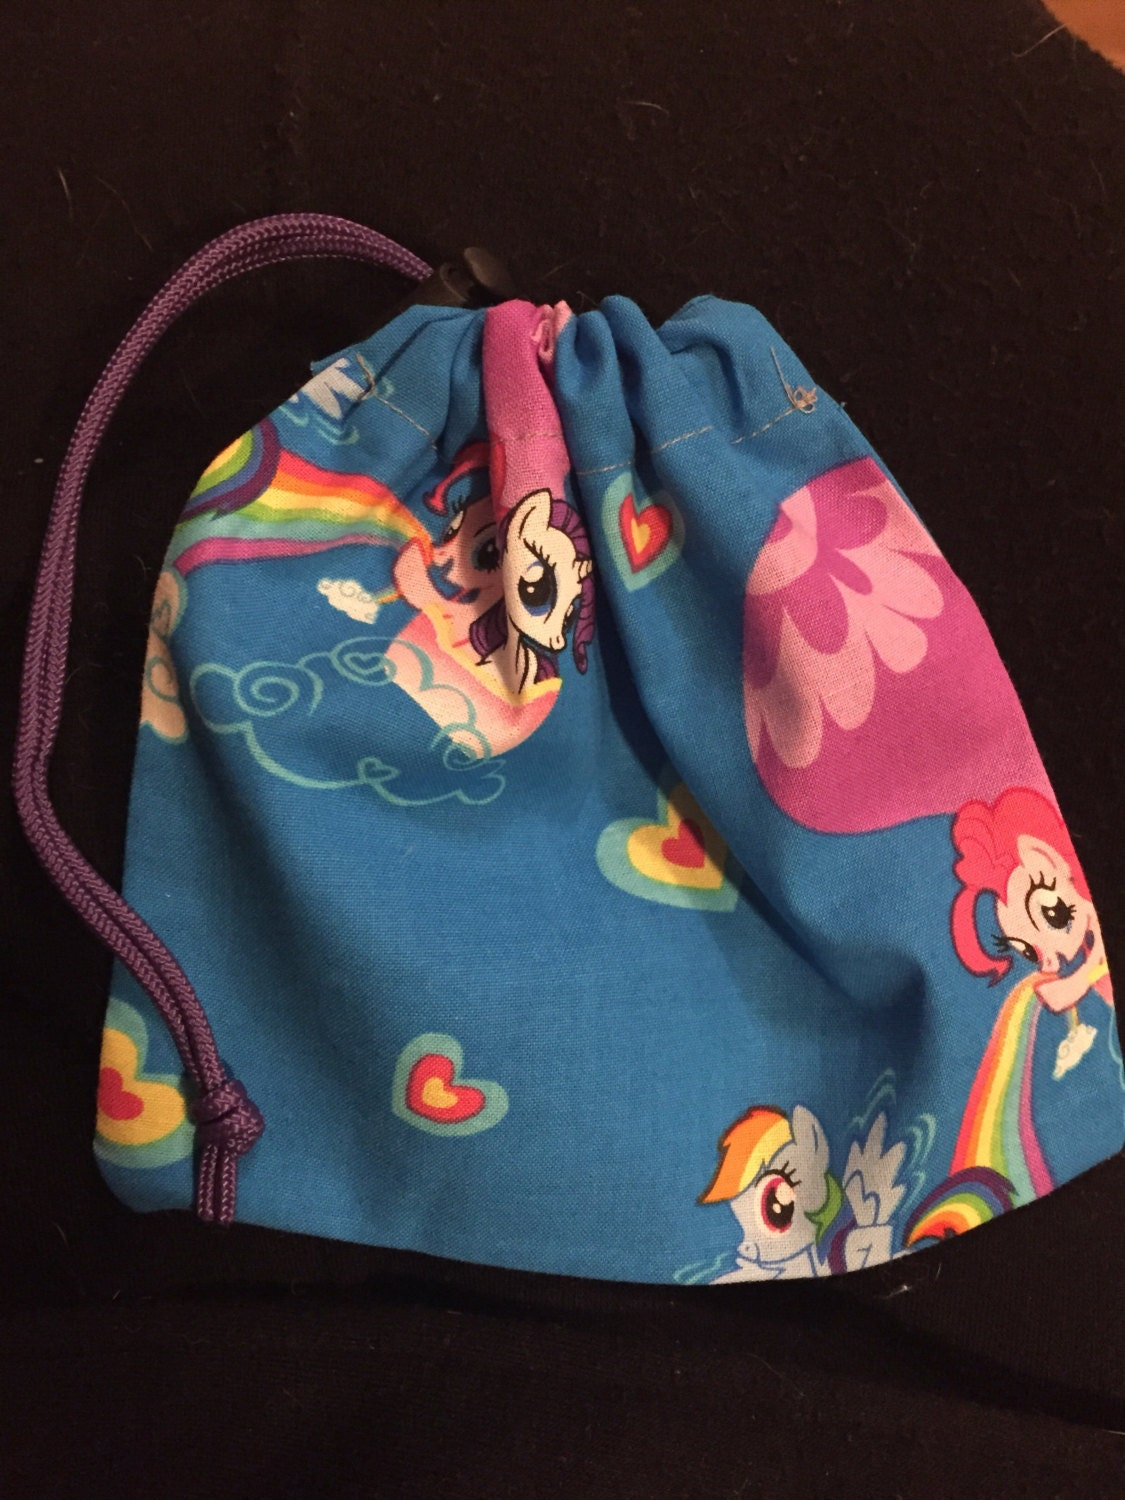 Drawstring bags for dice jewelry makeup and more my little for Drawstring jewelry bag pattern